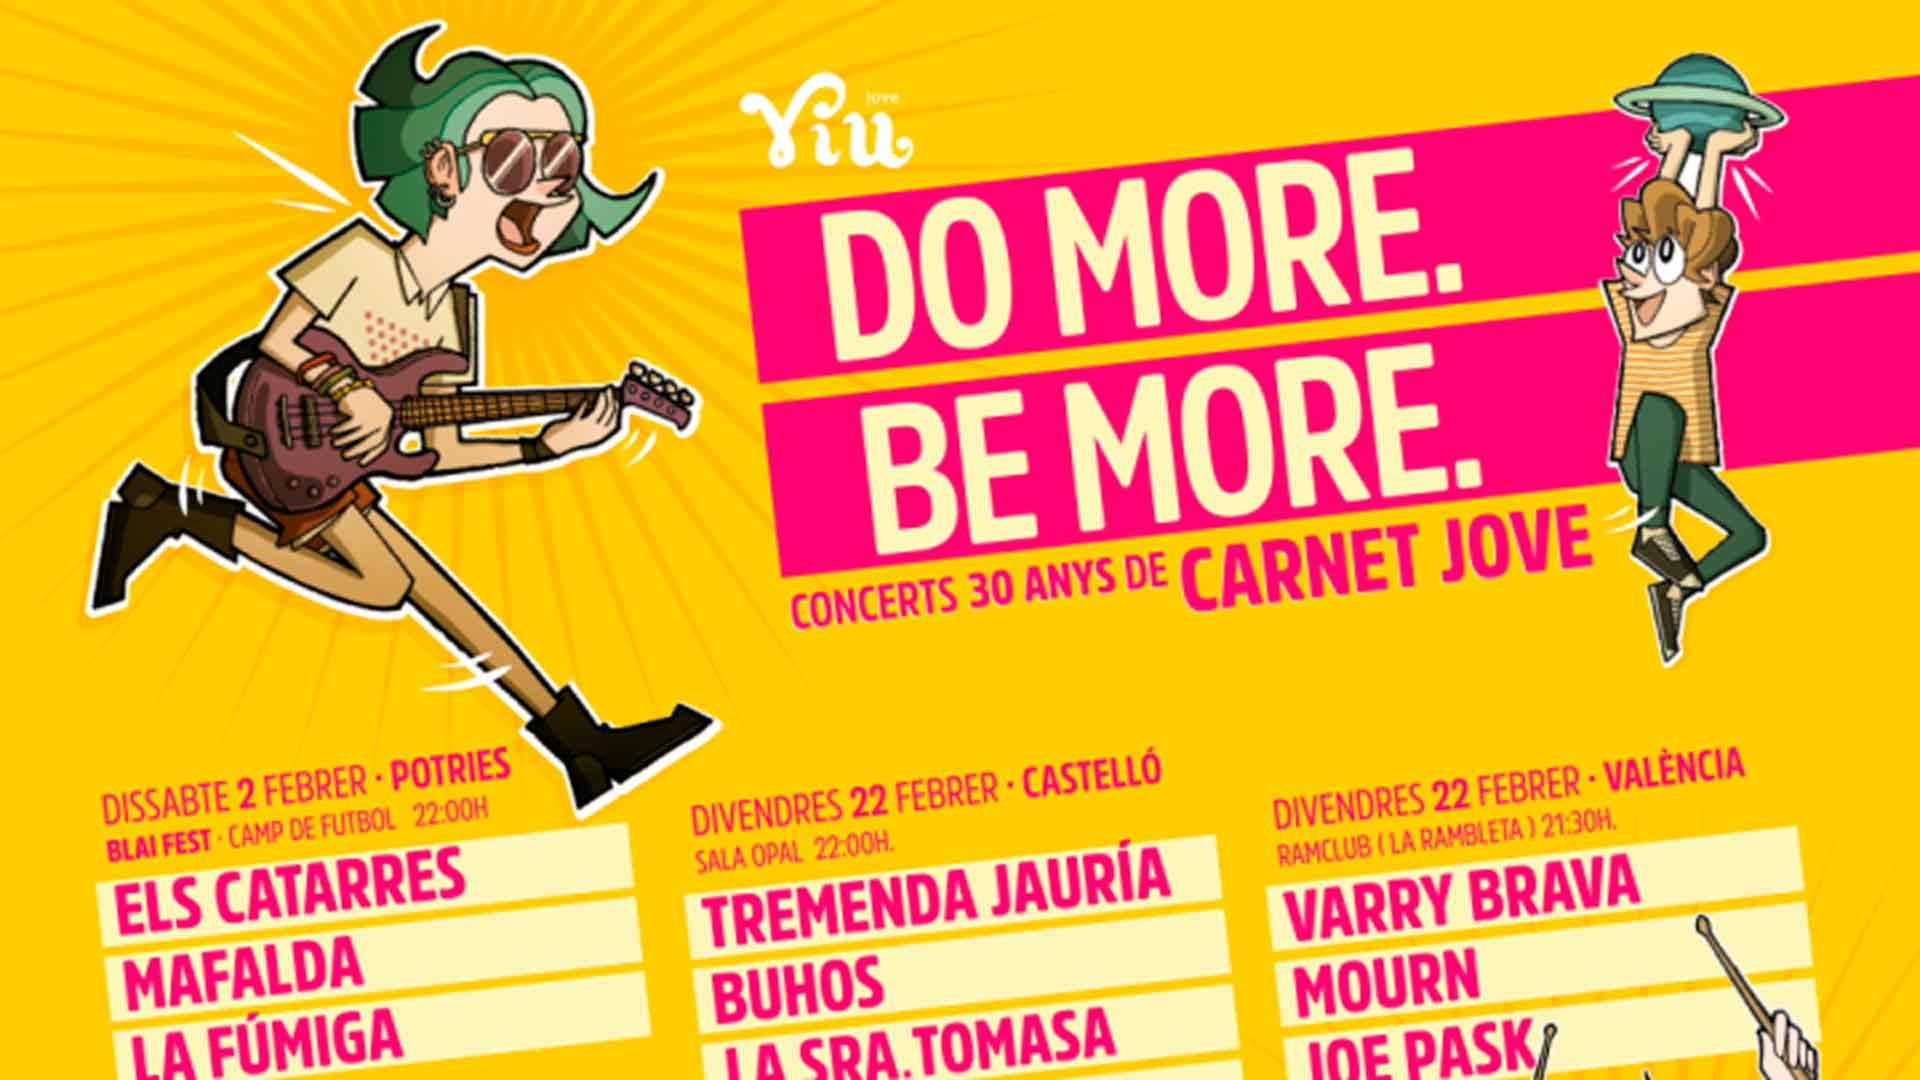 Do more, be more – Conciertos 30 anys del Carnet Jove